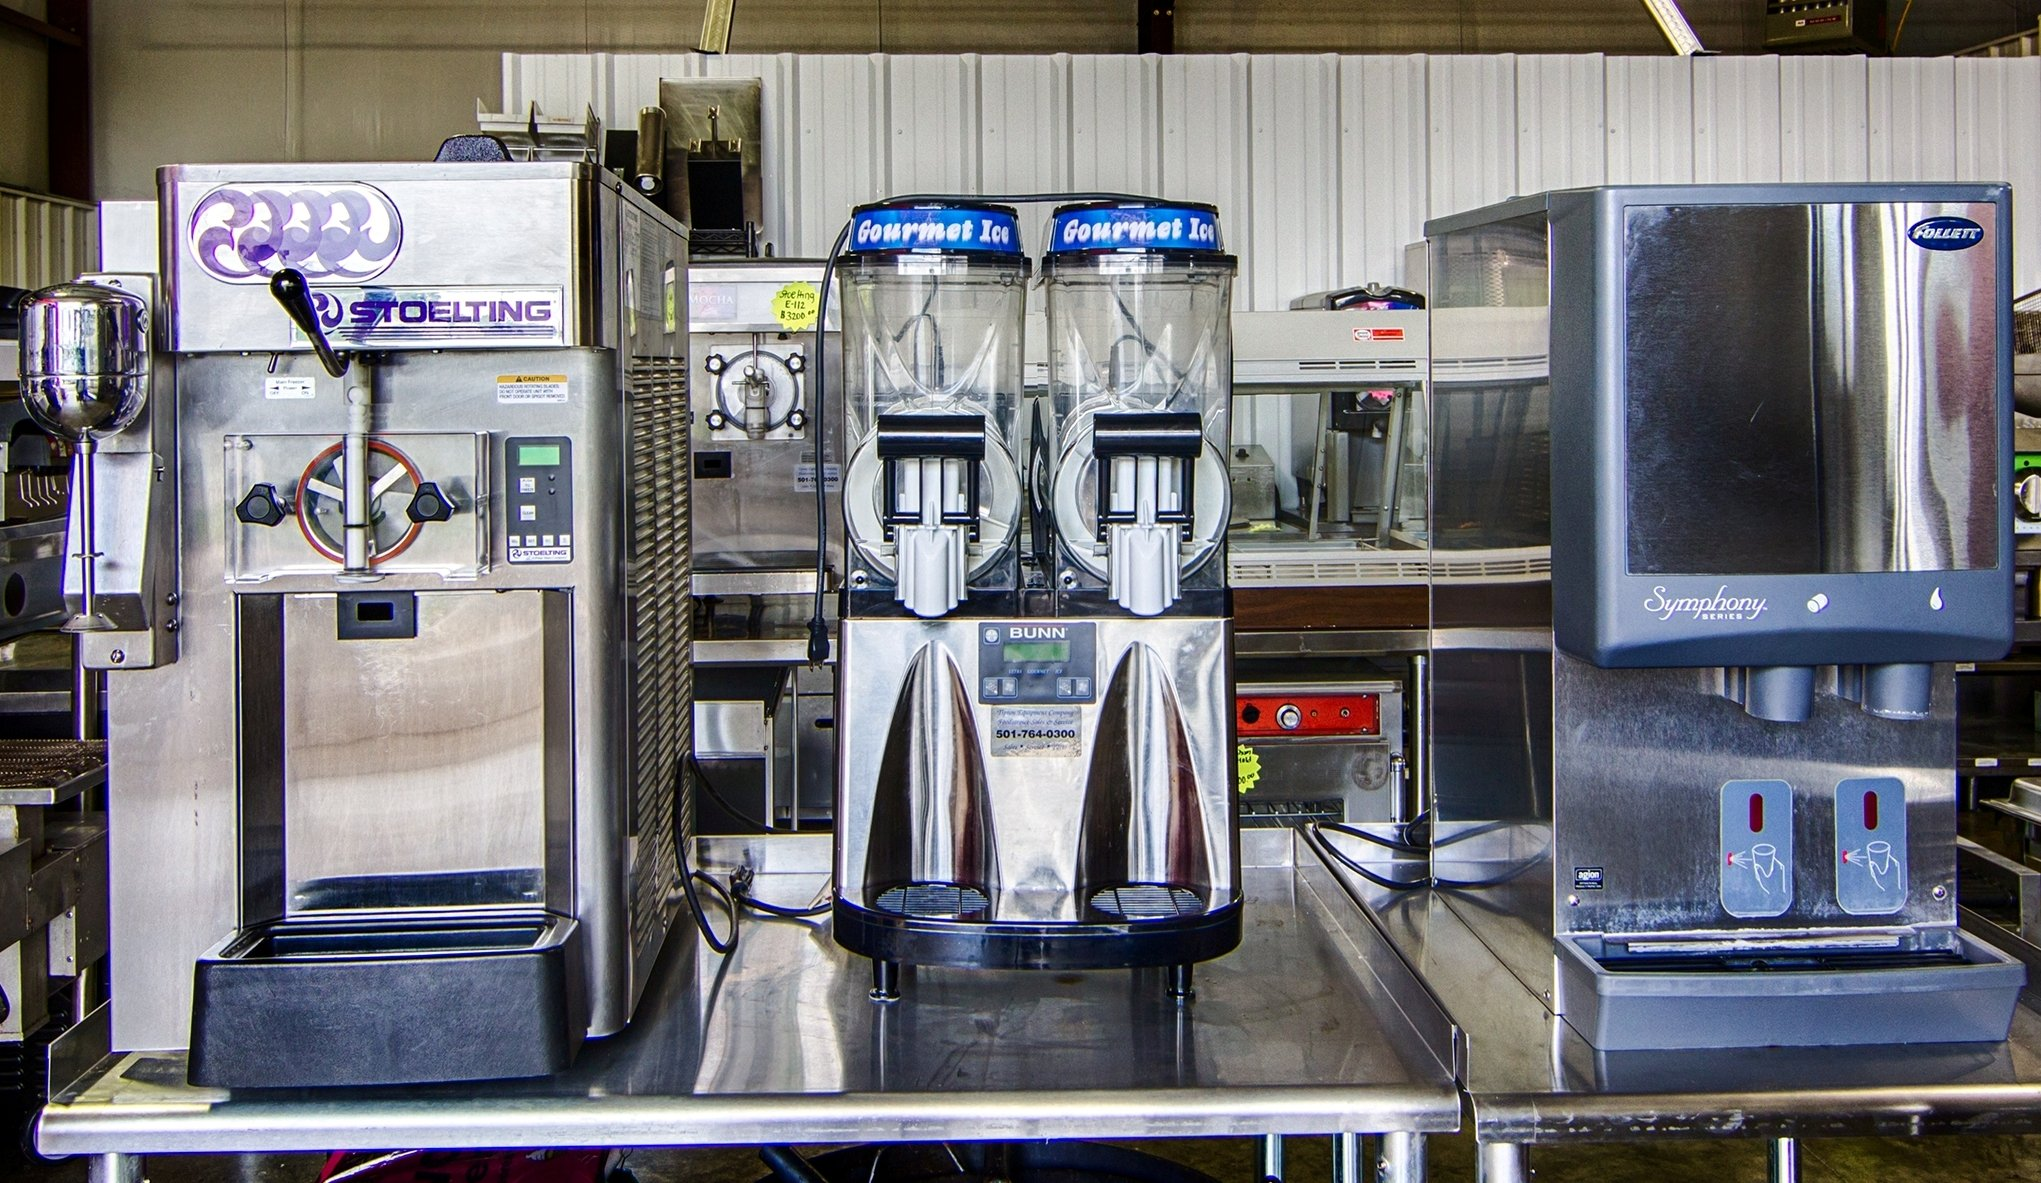 Used commercial kitchen equipment - Frozen Beverage Machines Used Commerical Cooking Equipment